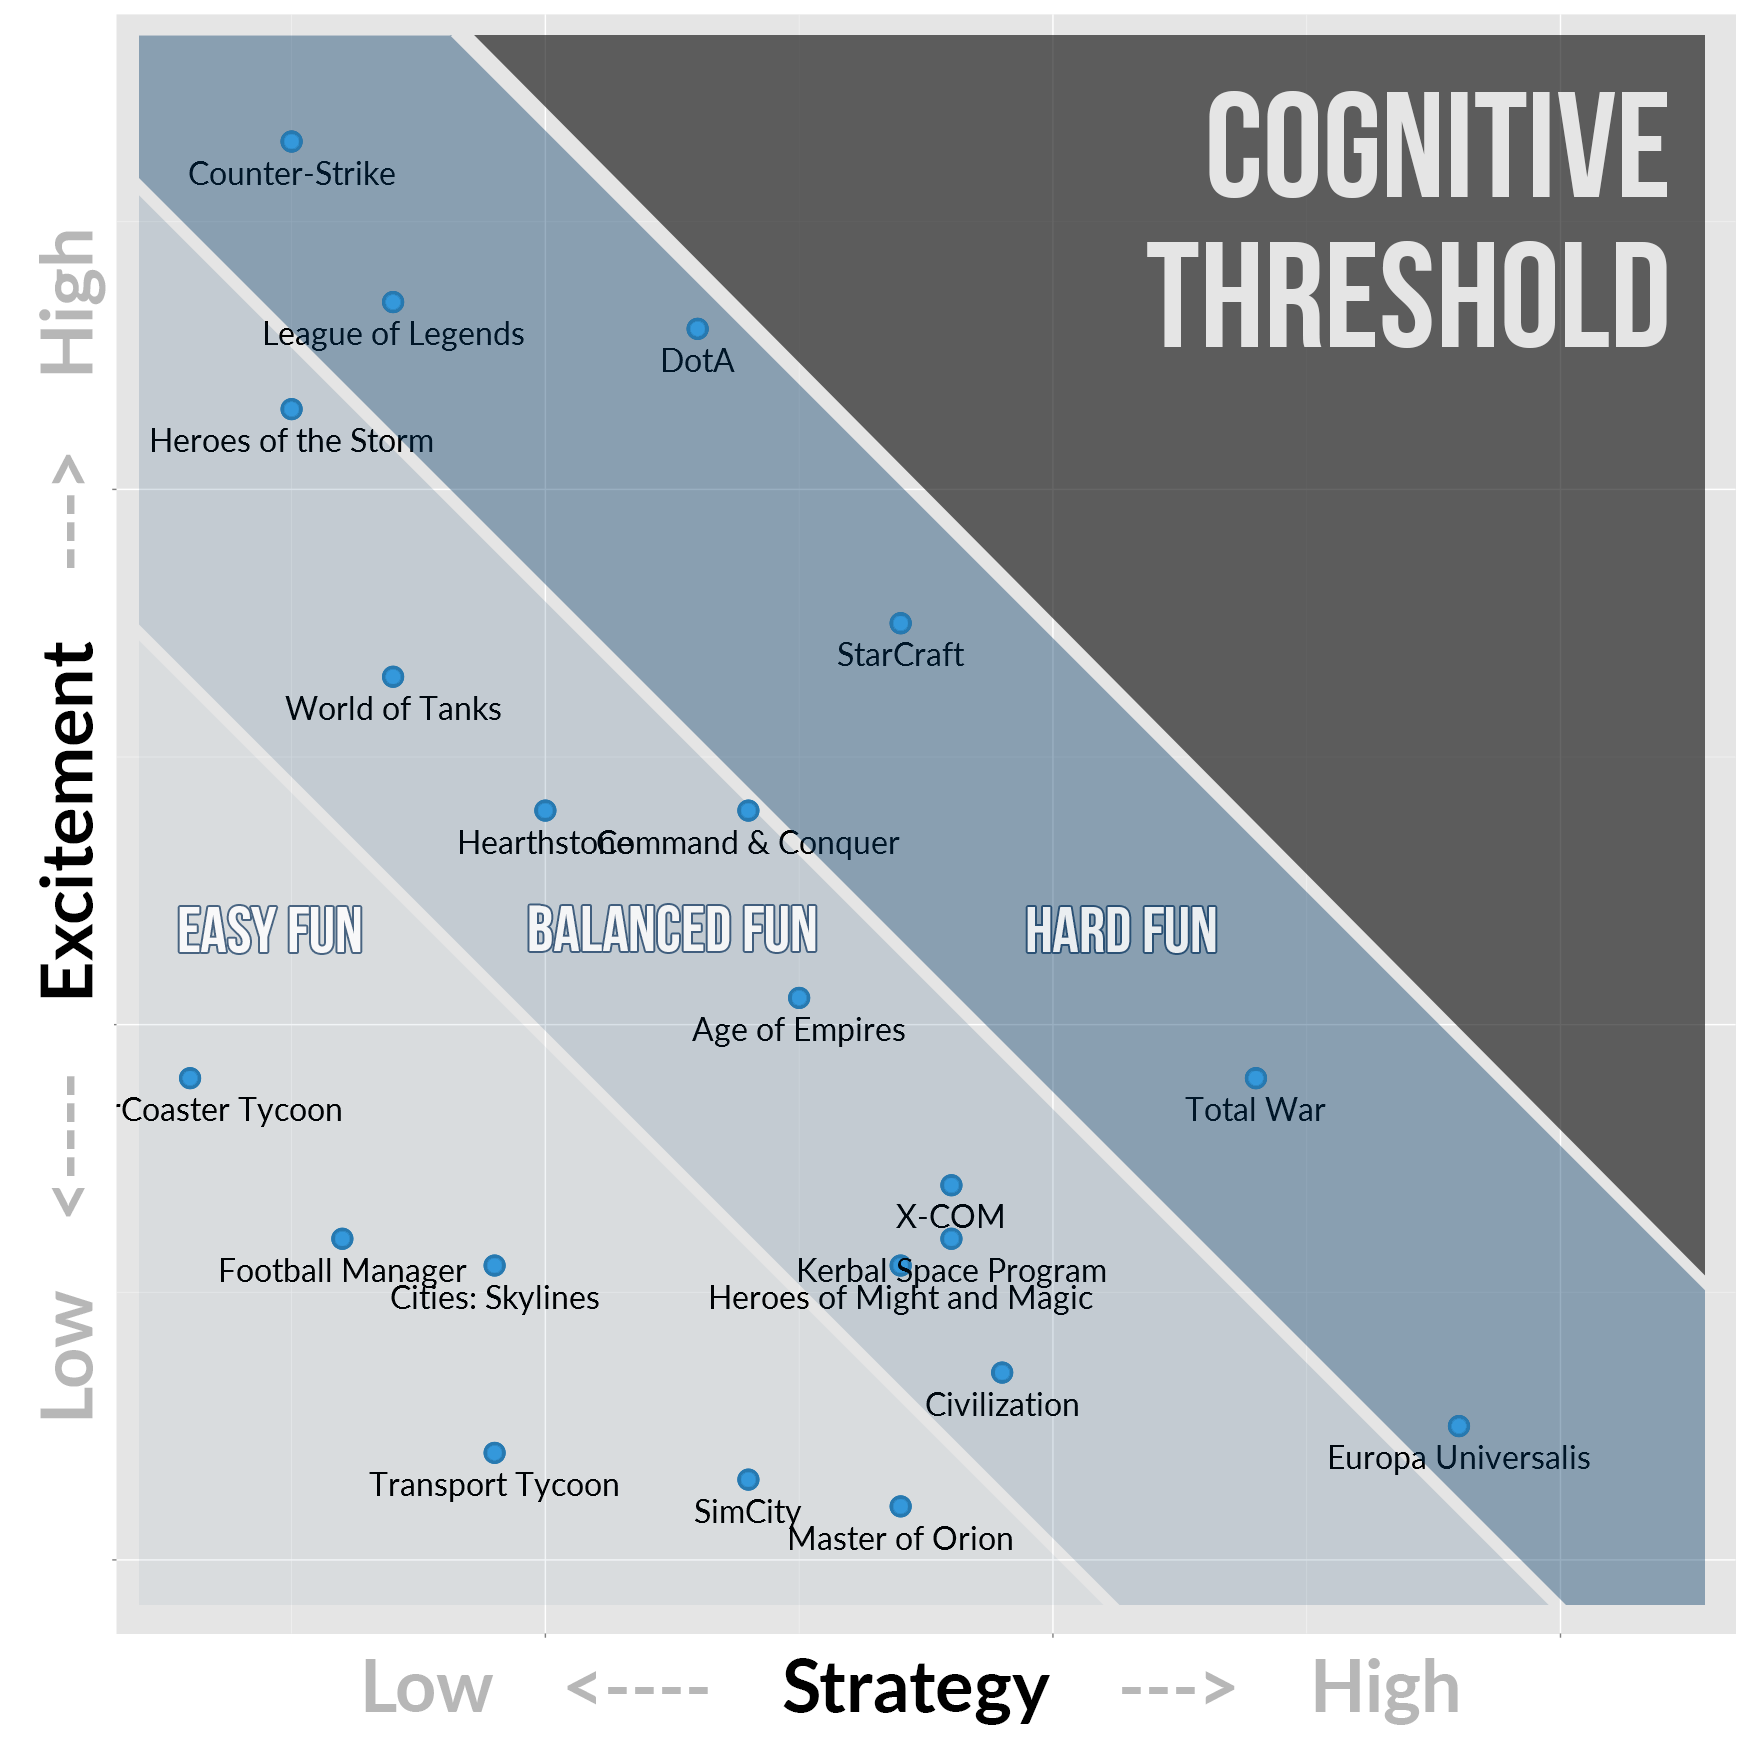 Game Genre Map: The Cognitive Threshold in Strategy Games